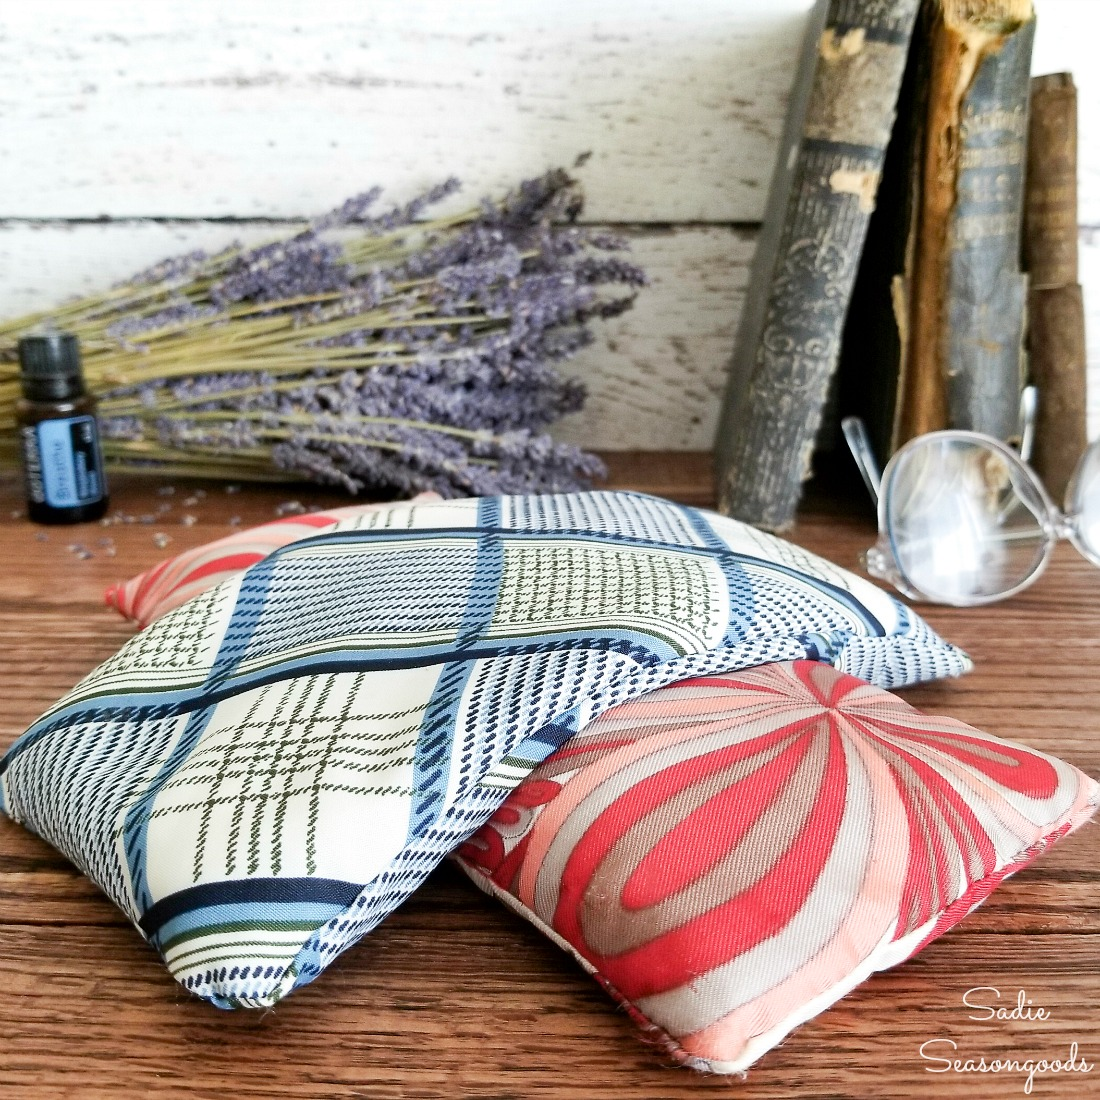 Upcycling a Vintage Scarf as a Lavender Eye Pillow for Self Care